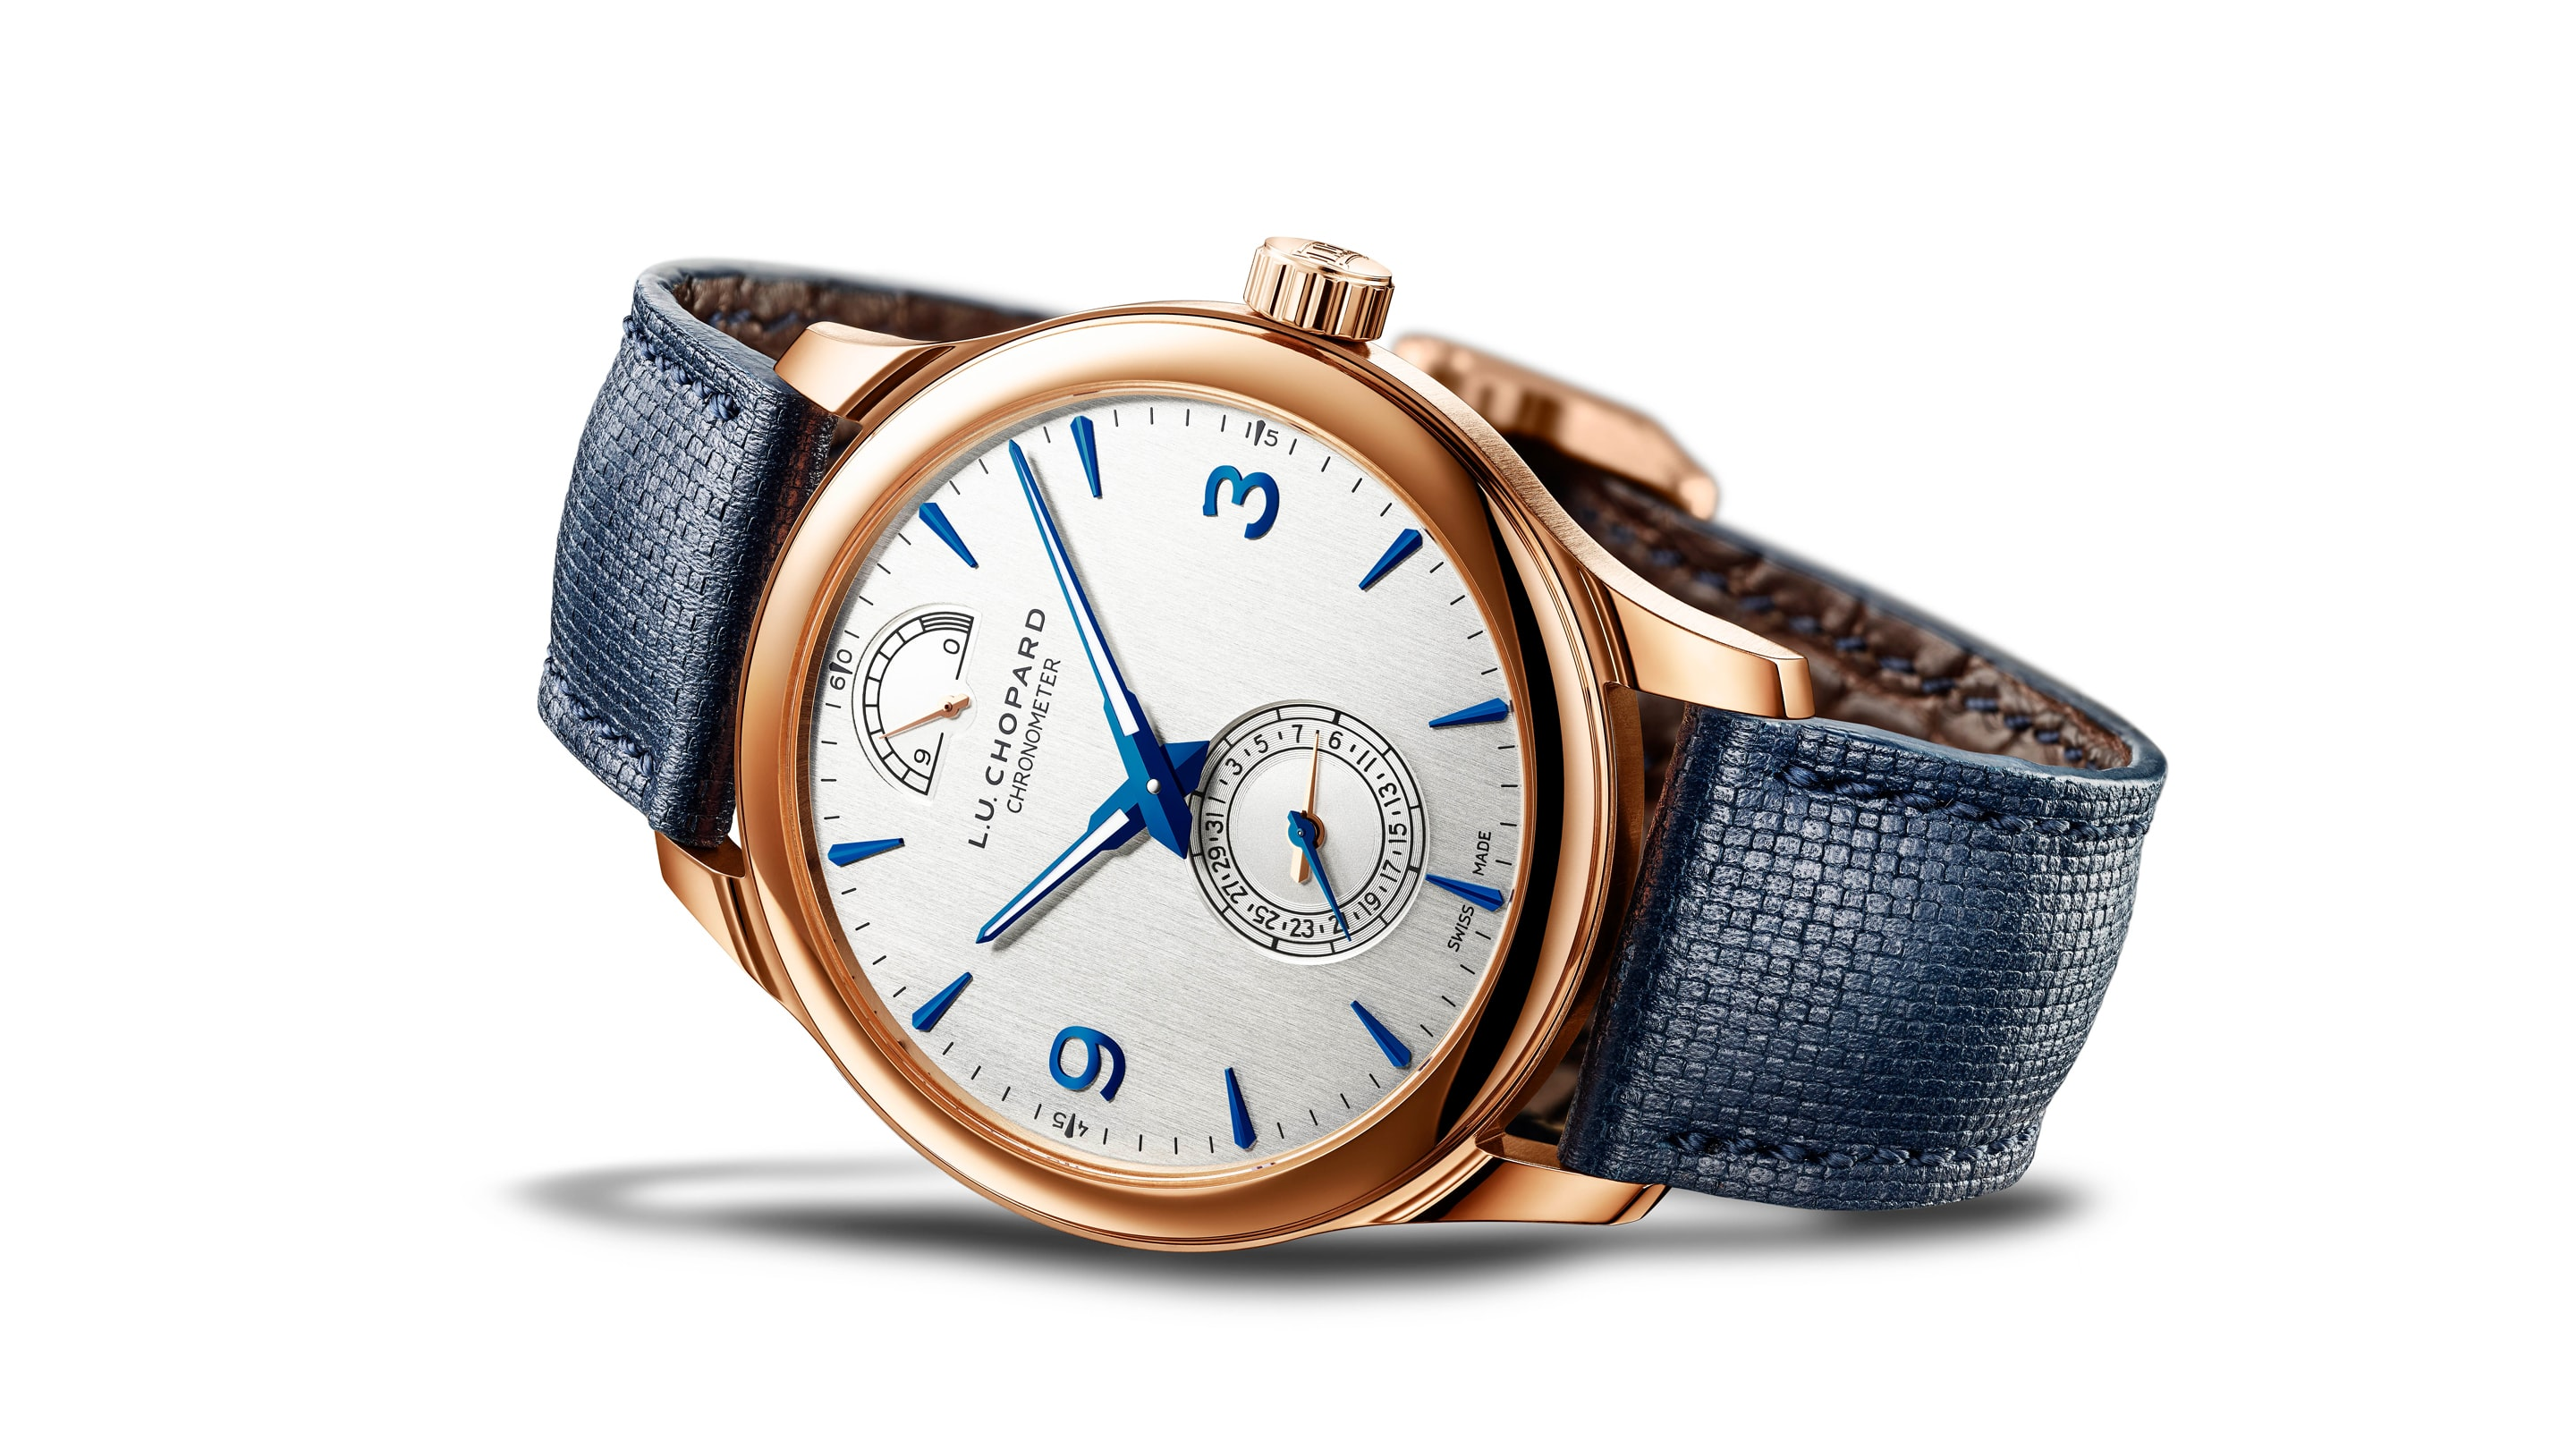 Introducing: The Chopard L.U.C Quattro